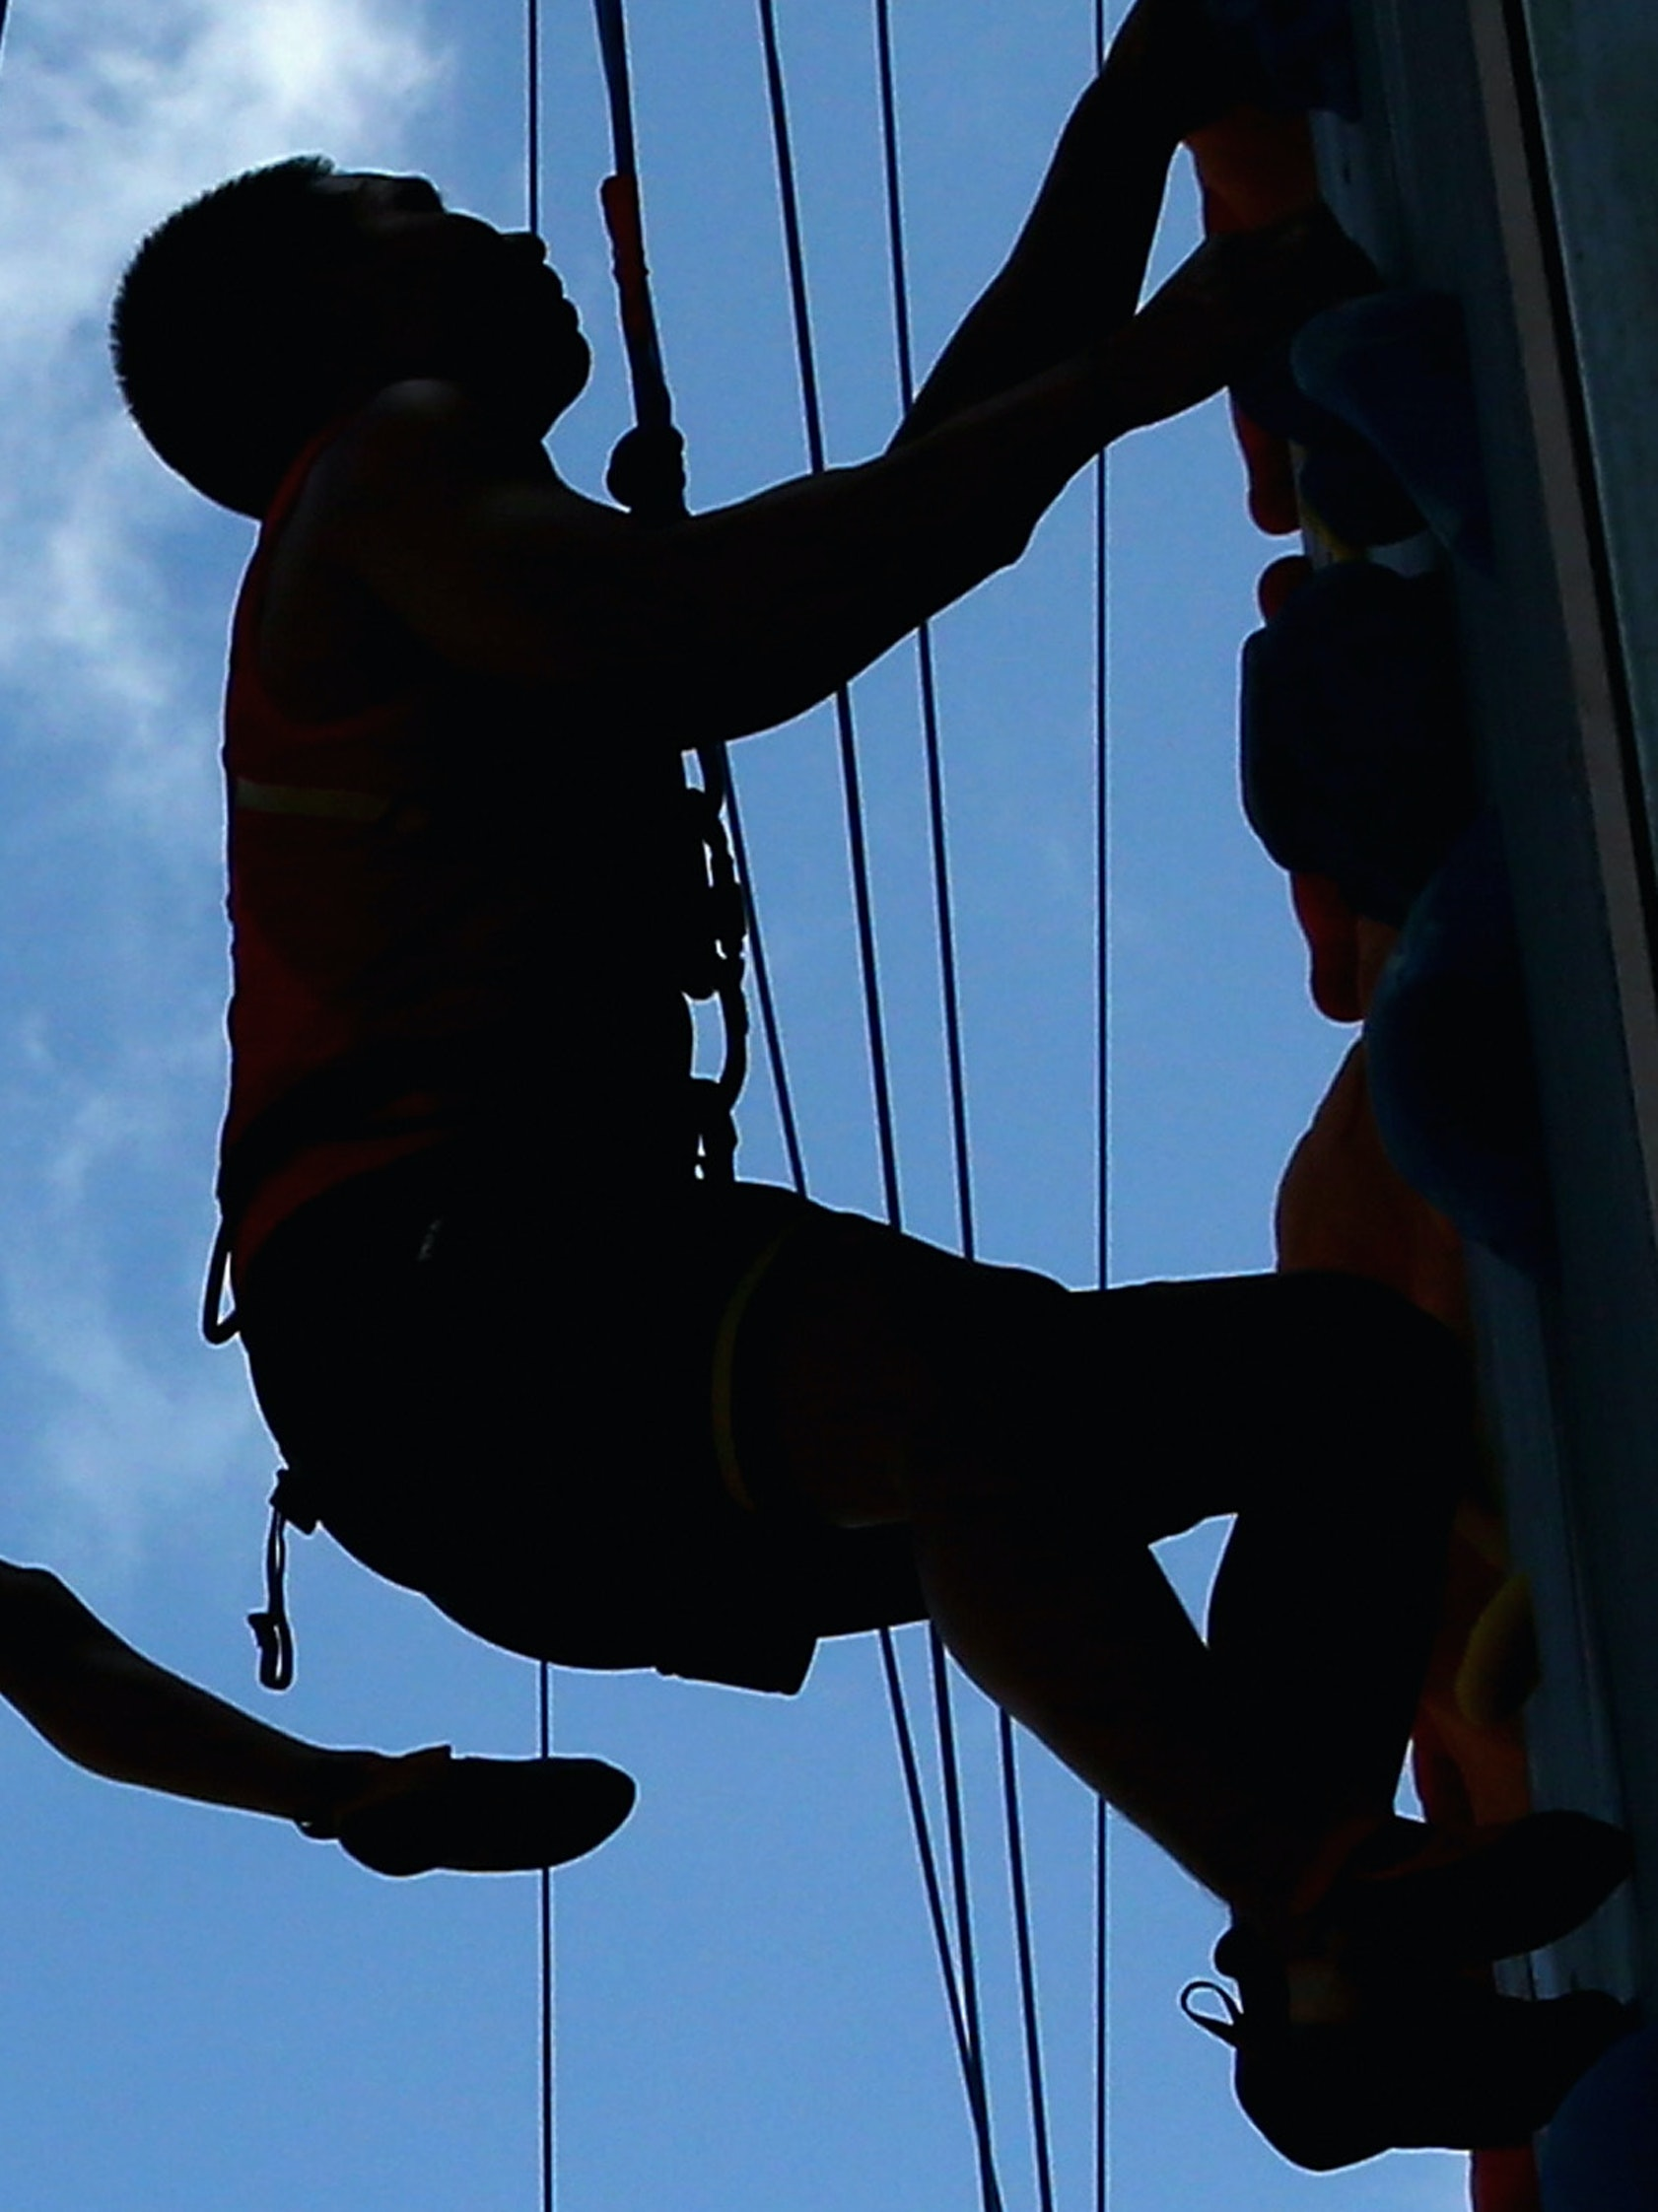 Competitors  train during a Sport Climbing practice session during the 2014 Asian Beach Games at Saphan Hin on November 14, 2014 in Phuket, Thailand.  (Photo by Quinn Rooney/Getty Images)